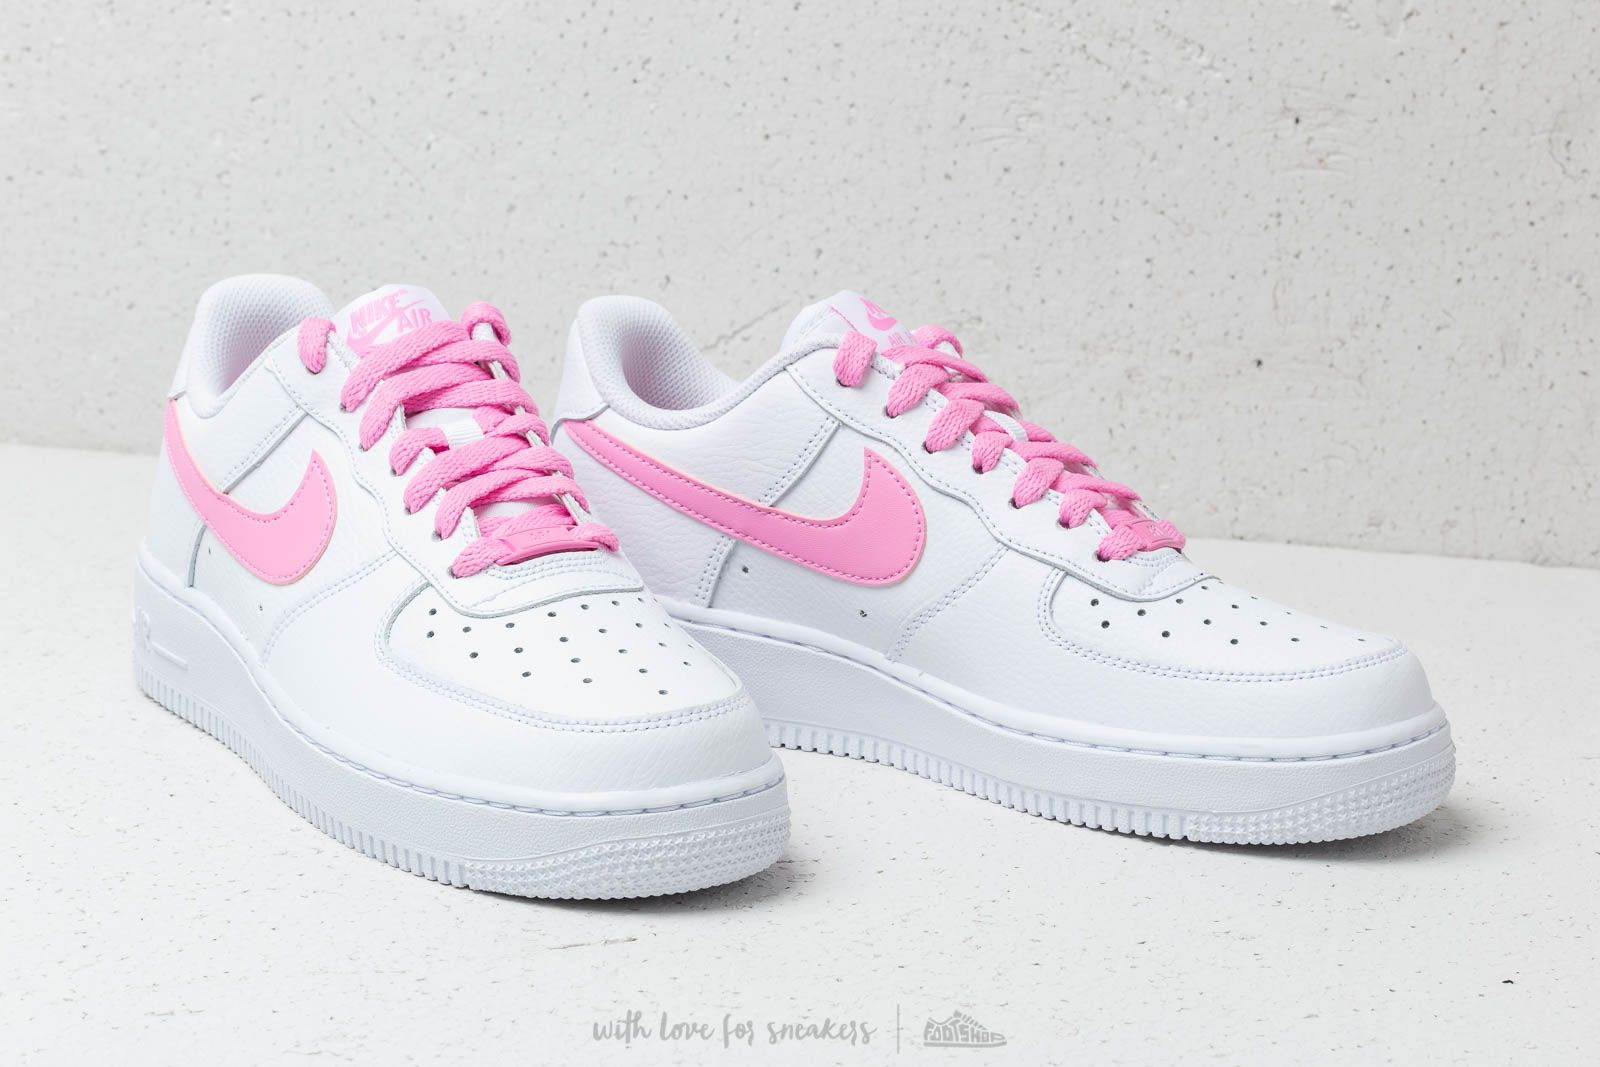 Nike Wmns Air Force 1 '07 EssWhite Psychic Pink